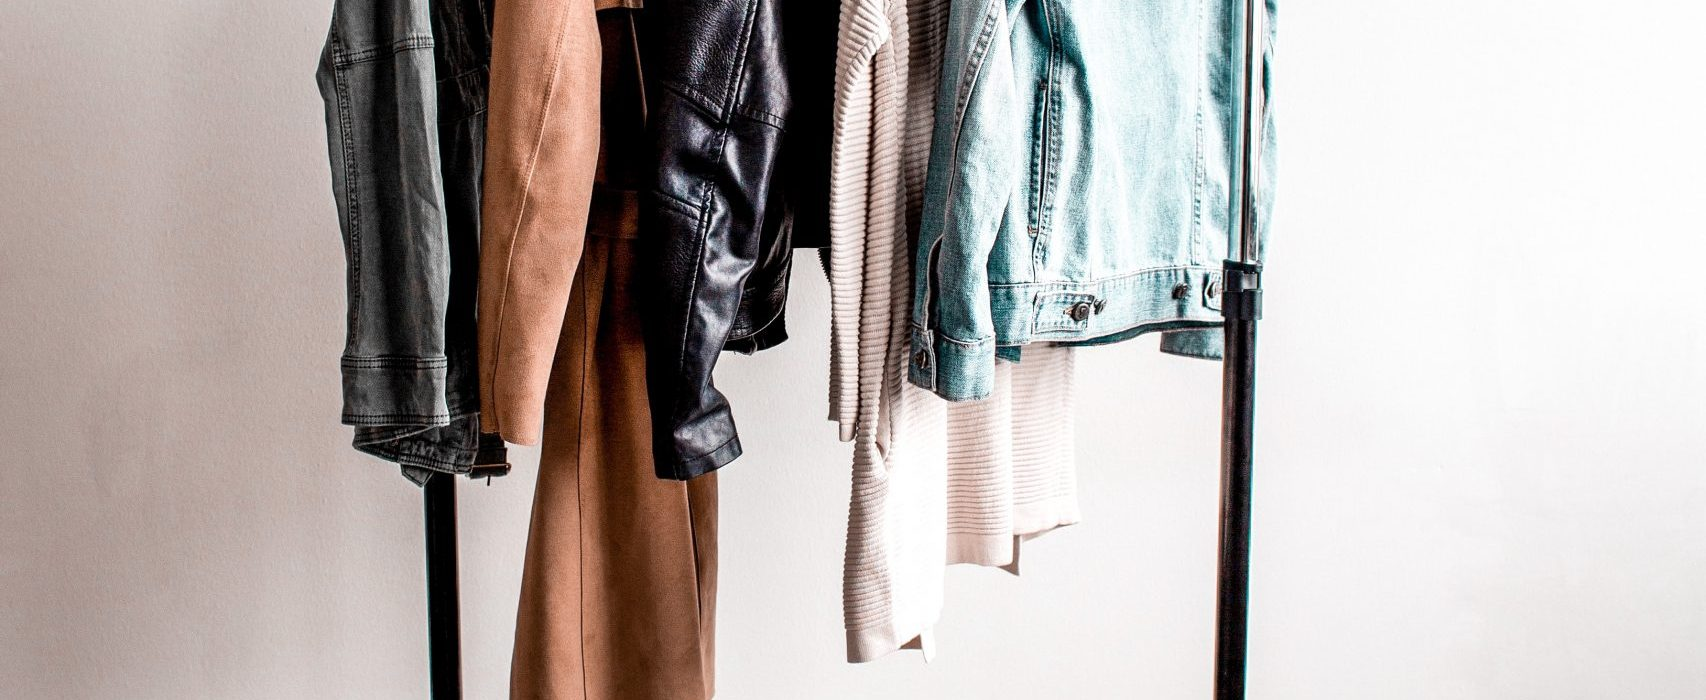 HOW TO UPDATE YOUR WARDROBE WITHOUT SPENDING A PENNY